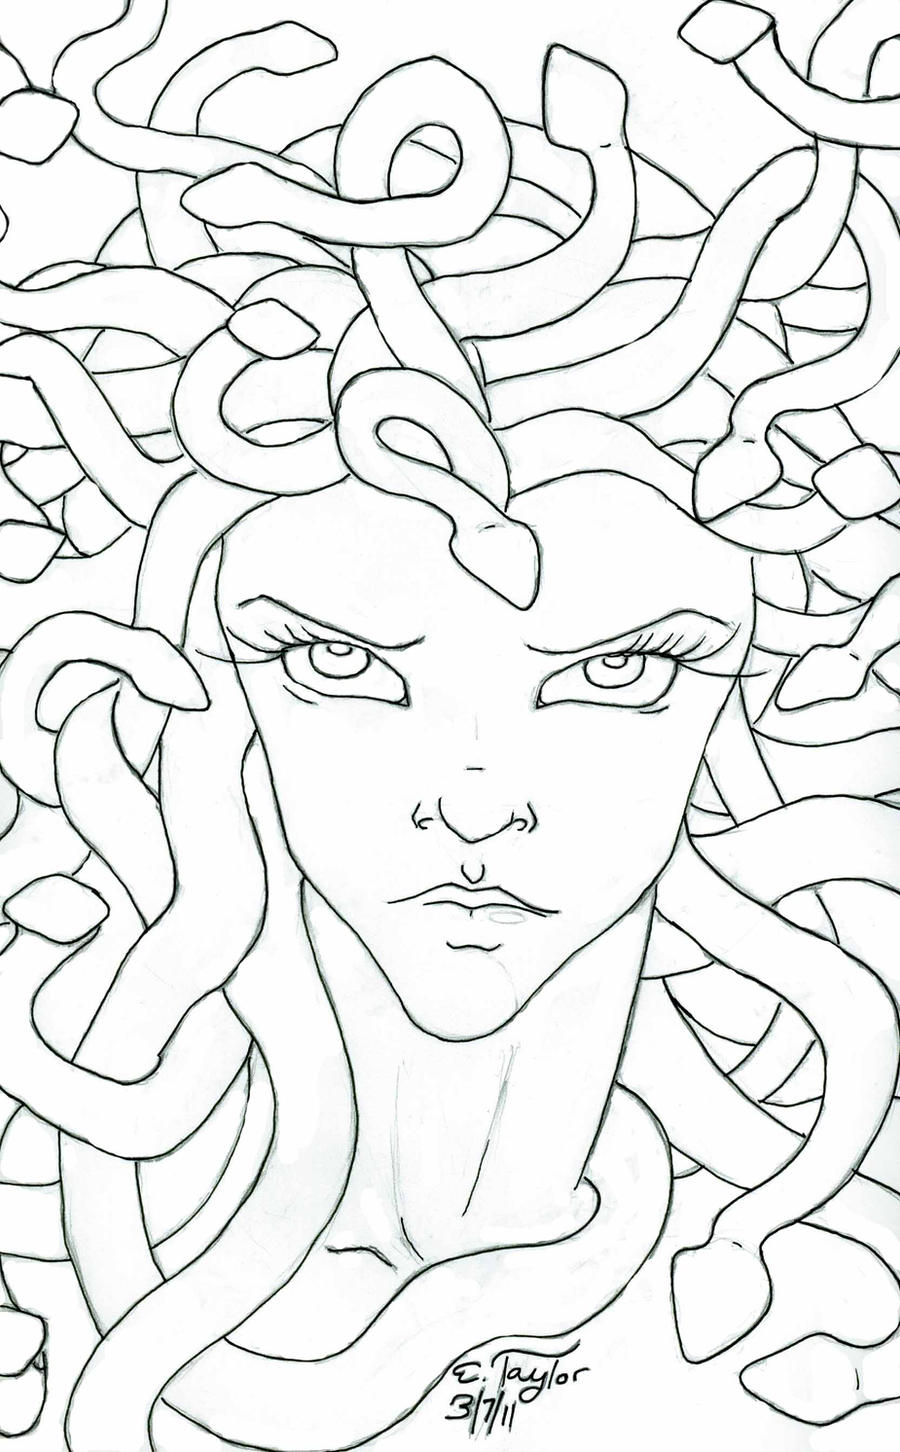 Medusa by bizliz on deviantart for Medusa coloring pages